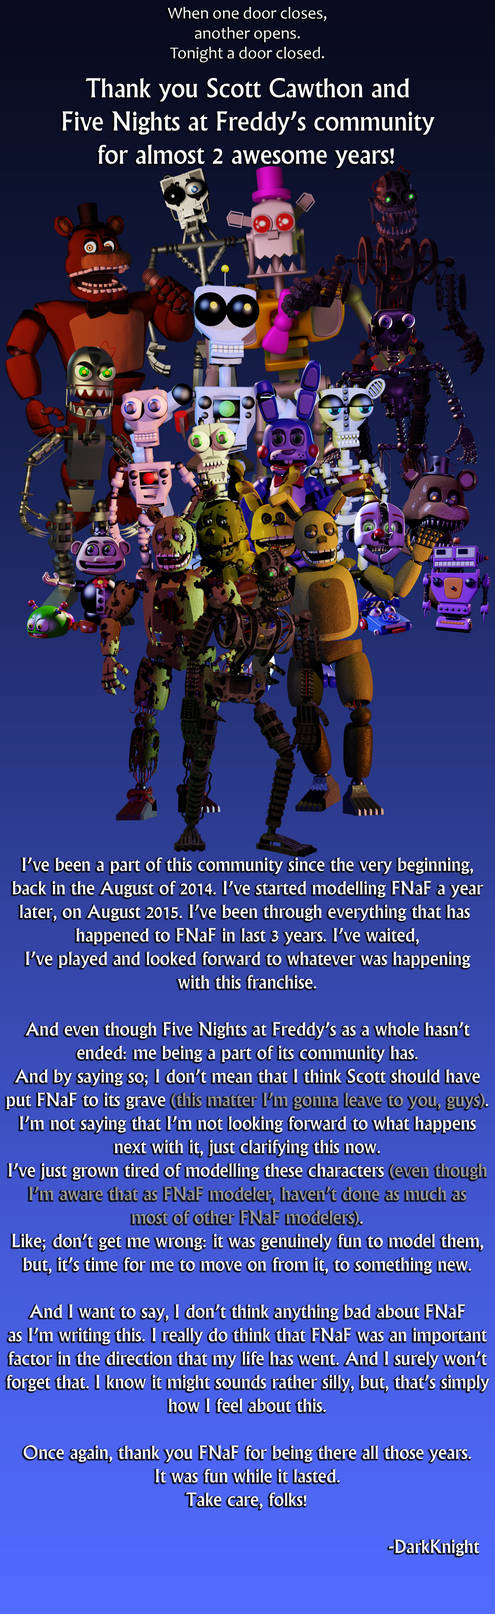 Thank You Five Nights at Freddy's!